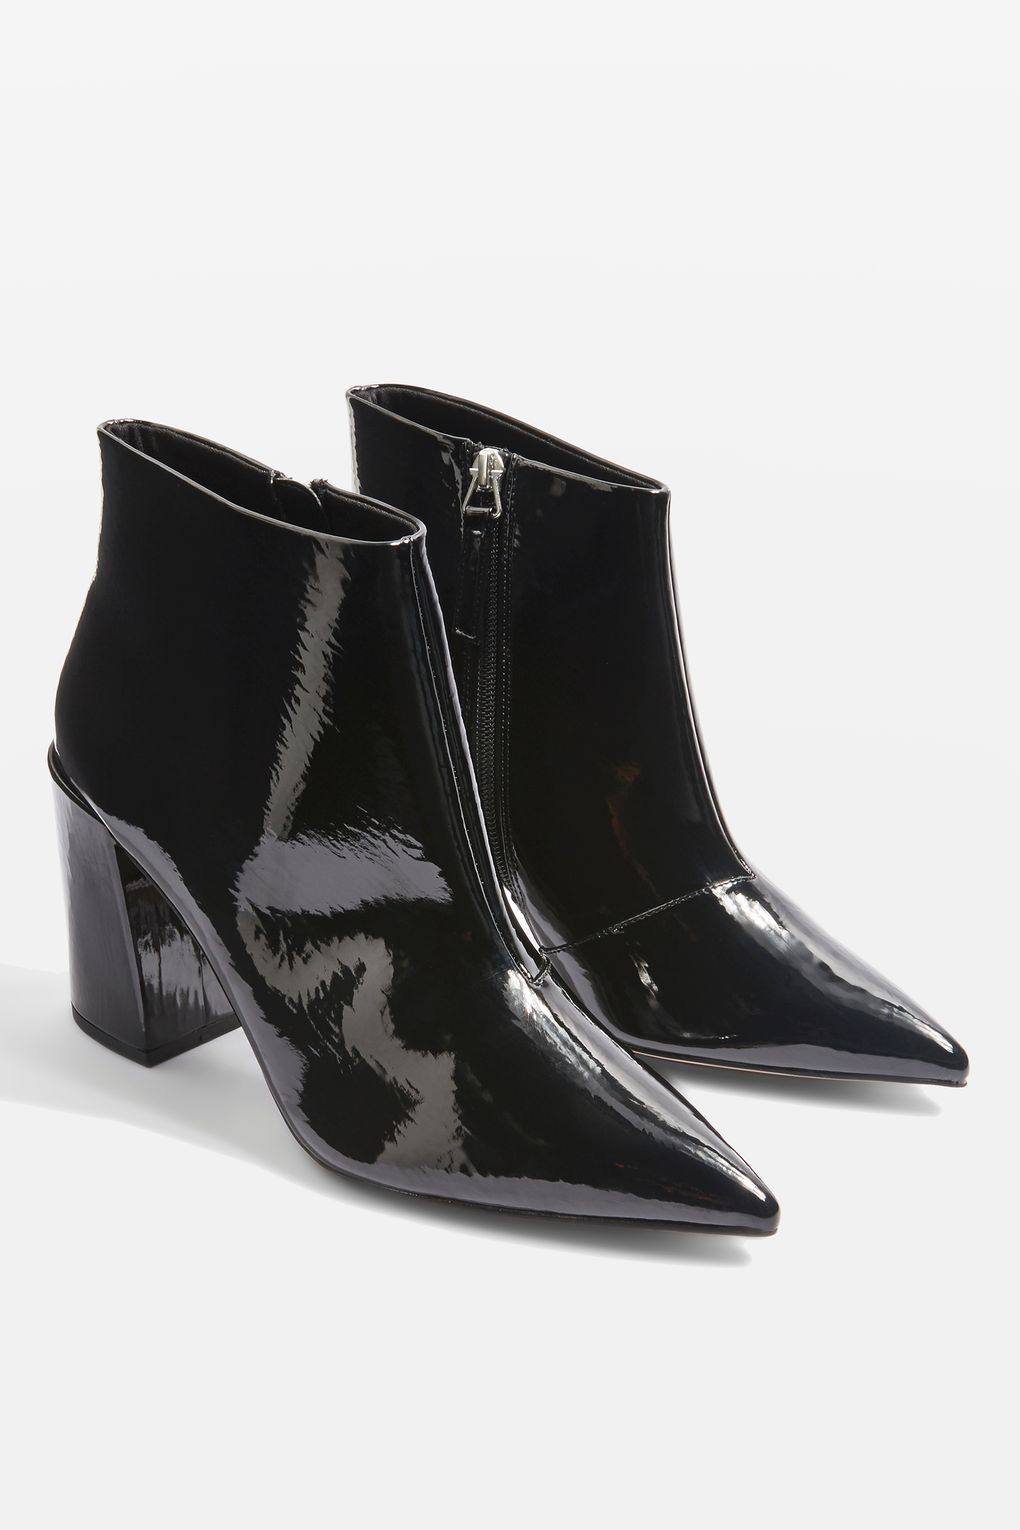 Women's Topshop Black Leather ankle boots with zips size UK 4 Euro 37